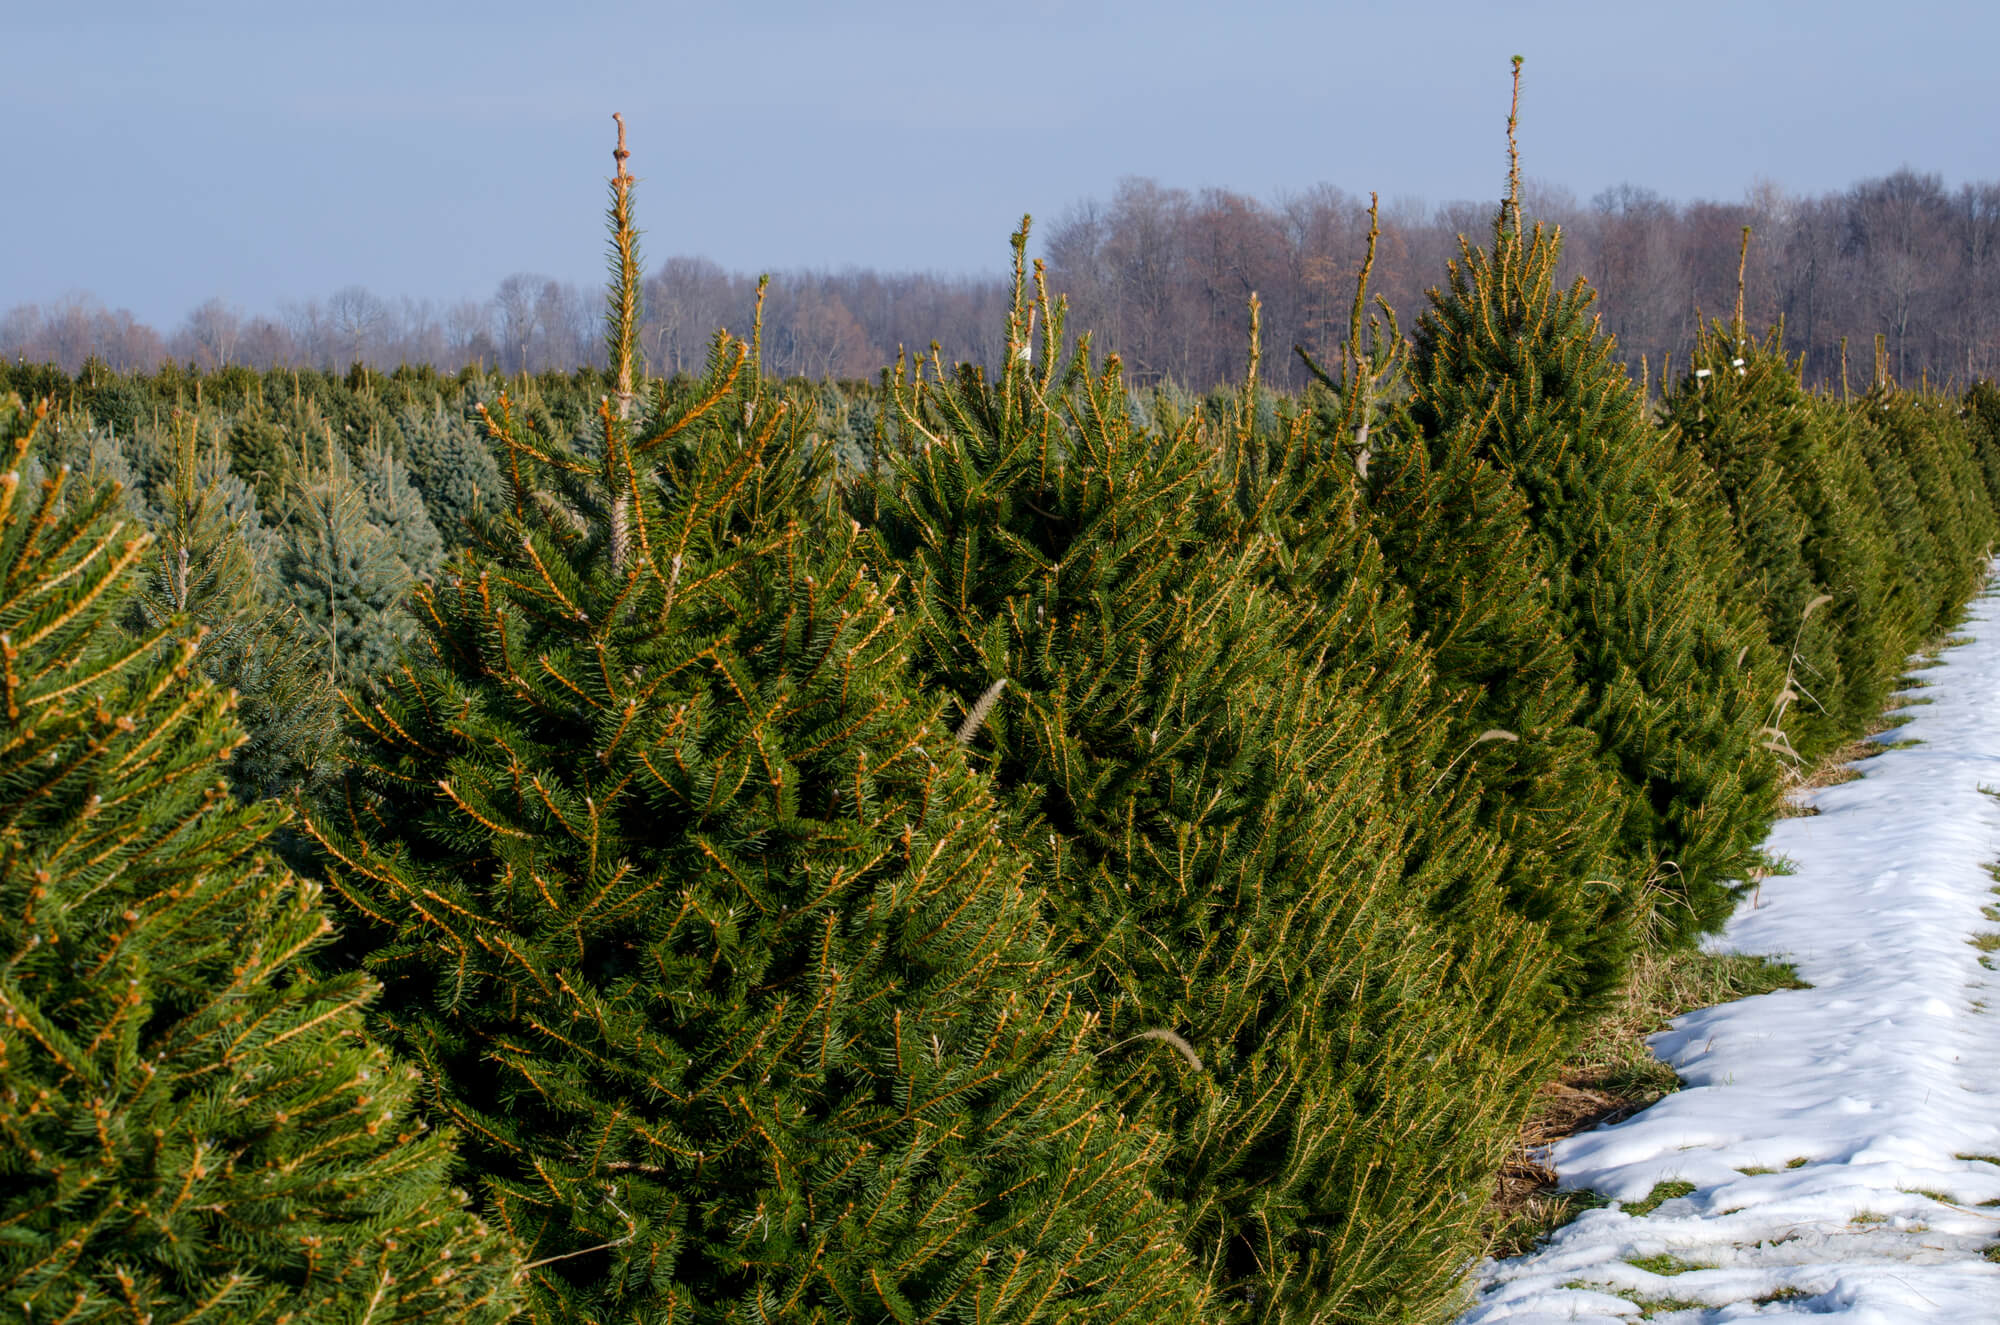 Boy Scouts Christmas Tree Rockford Il 2020 Christmas Tree Farms and Stands in Rockford, Illinois | Stateline Kids